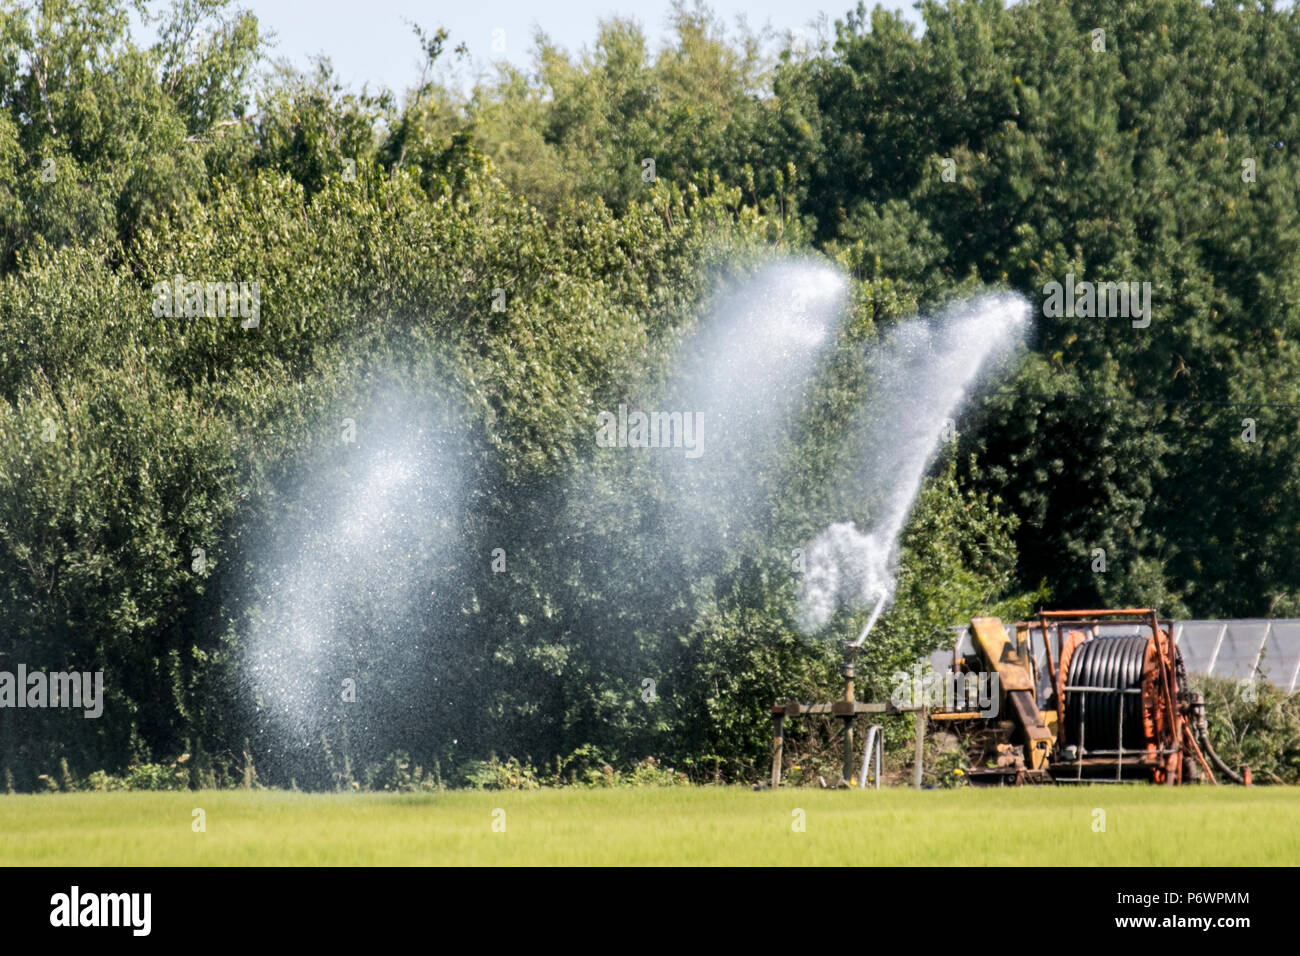 Burscough, Lancashire. UK Weather. 03/07/2018. Circle Irrigation, or centre-pivot irrigation with farmers watering parched crops and newly planted fields. Water is supplied from the nearby Leeds Liverpool canal and pumped to the sprayer by tractor. Credit: MediaWorldImages/AlamyLiveNews. - Stock Image